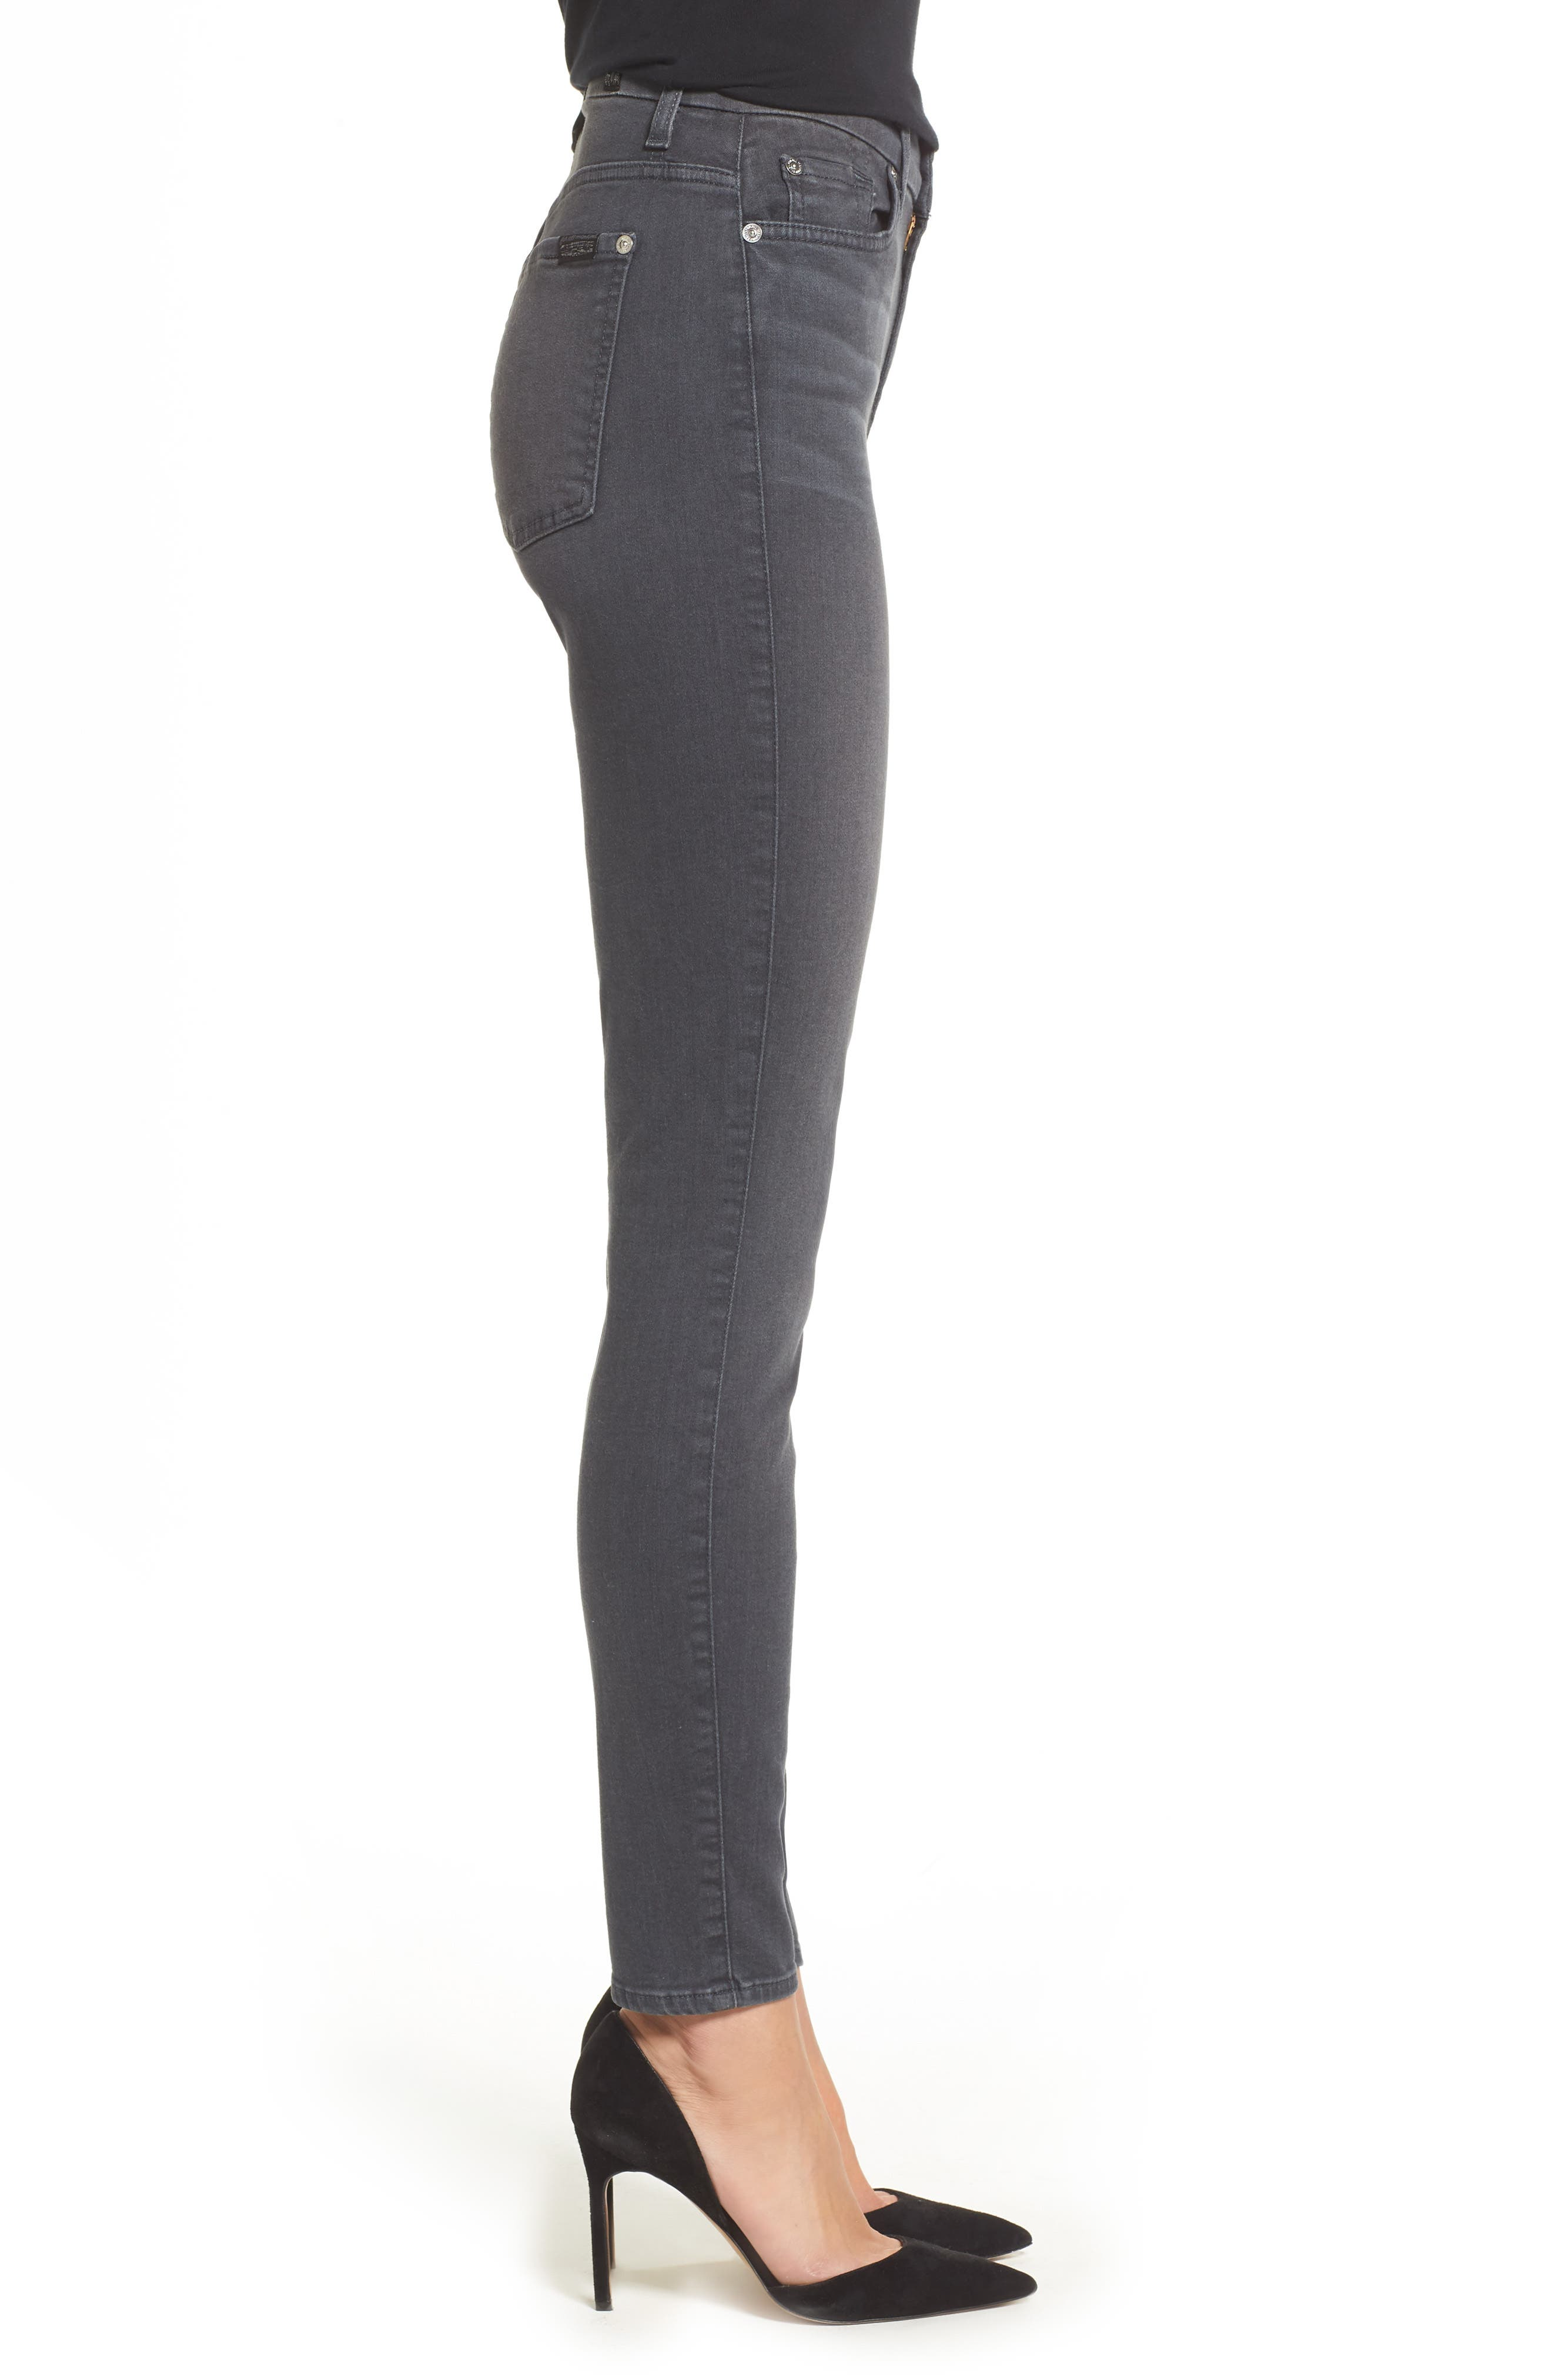 b(air) High Waist Ankle Skinny Jeans,                             Alternate thumbnail 3, color,                             024